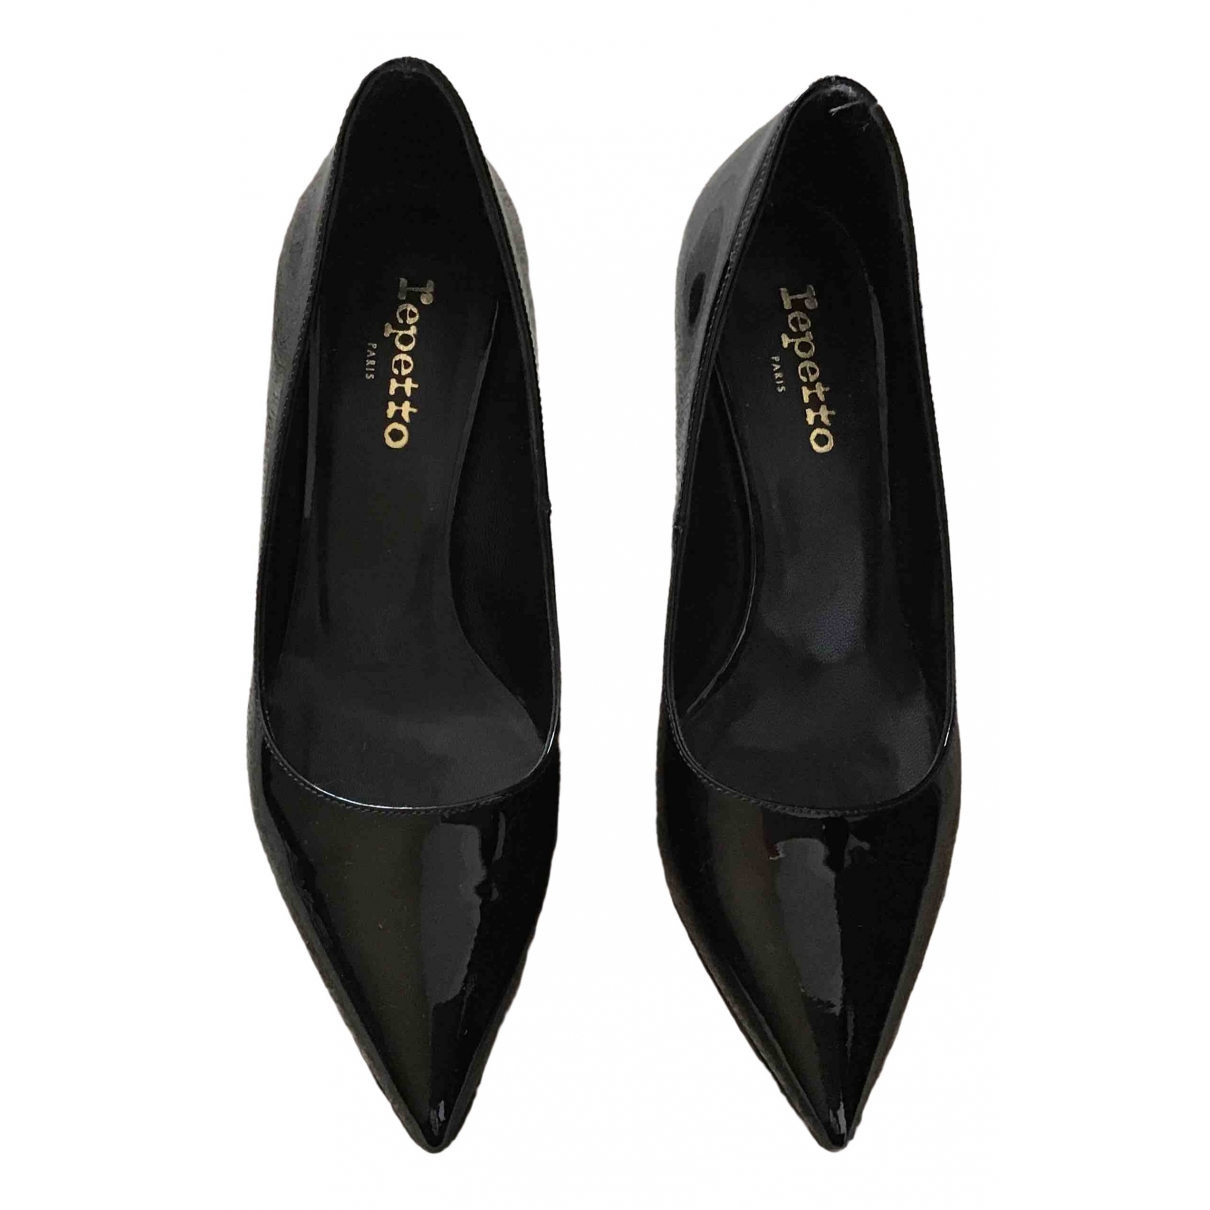 Repetto \N Black Patent leather Heels for Women 37 EU